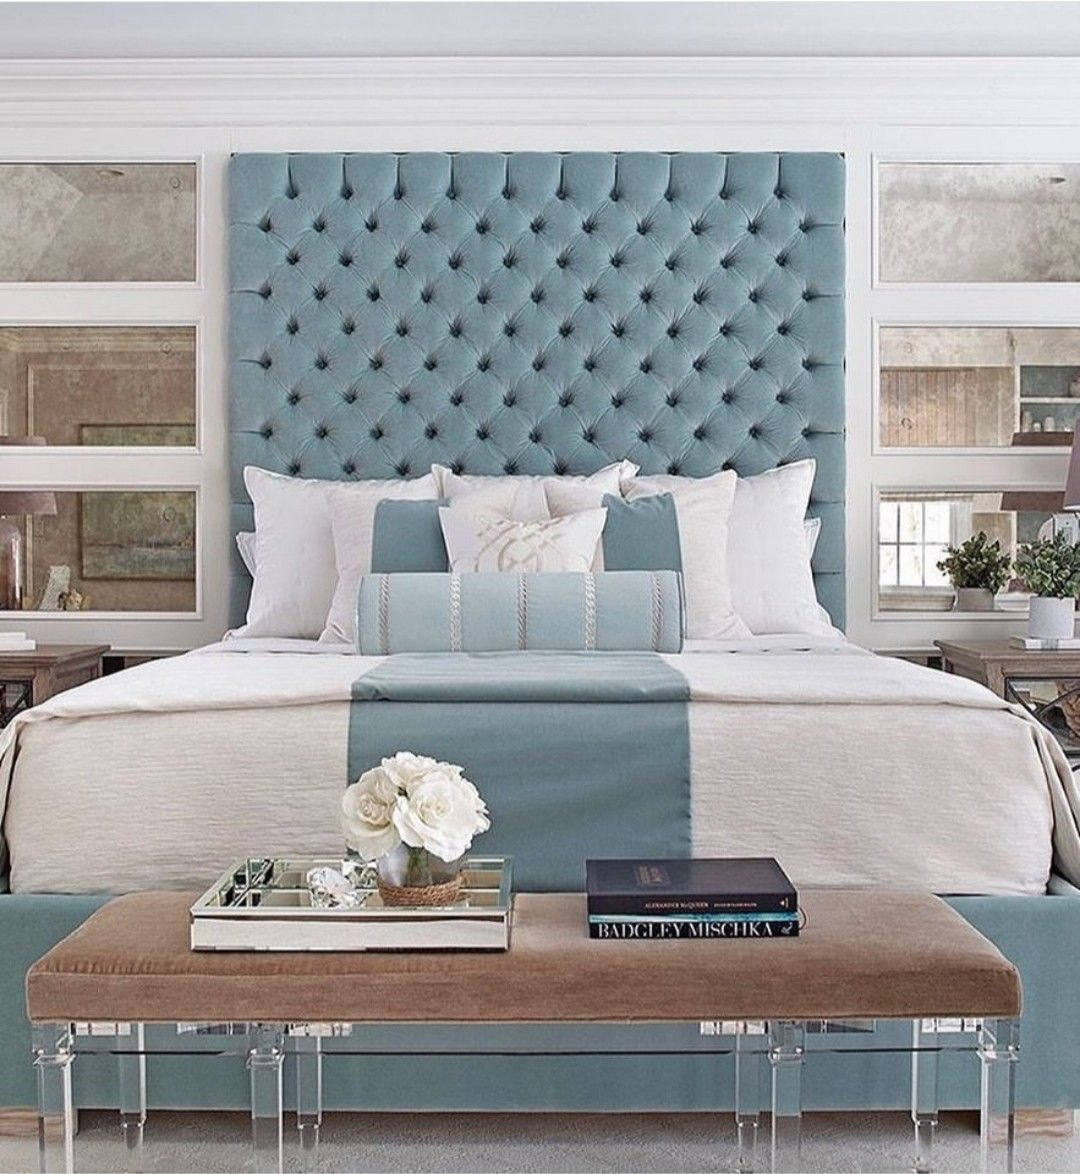 Master Bedroom Staging Ideas: Pin By Phoebe Jules On Interior Design Ideas